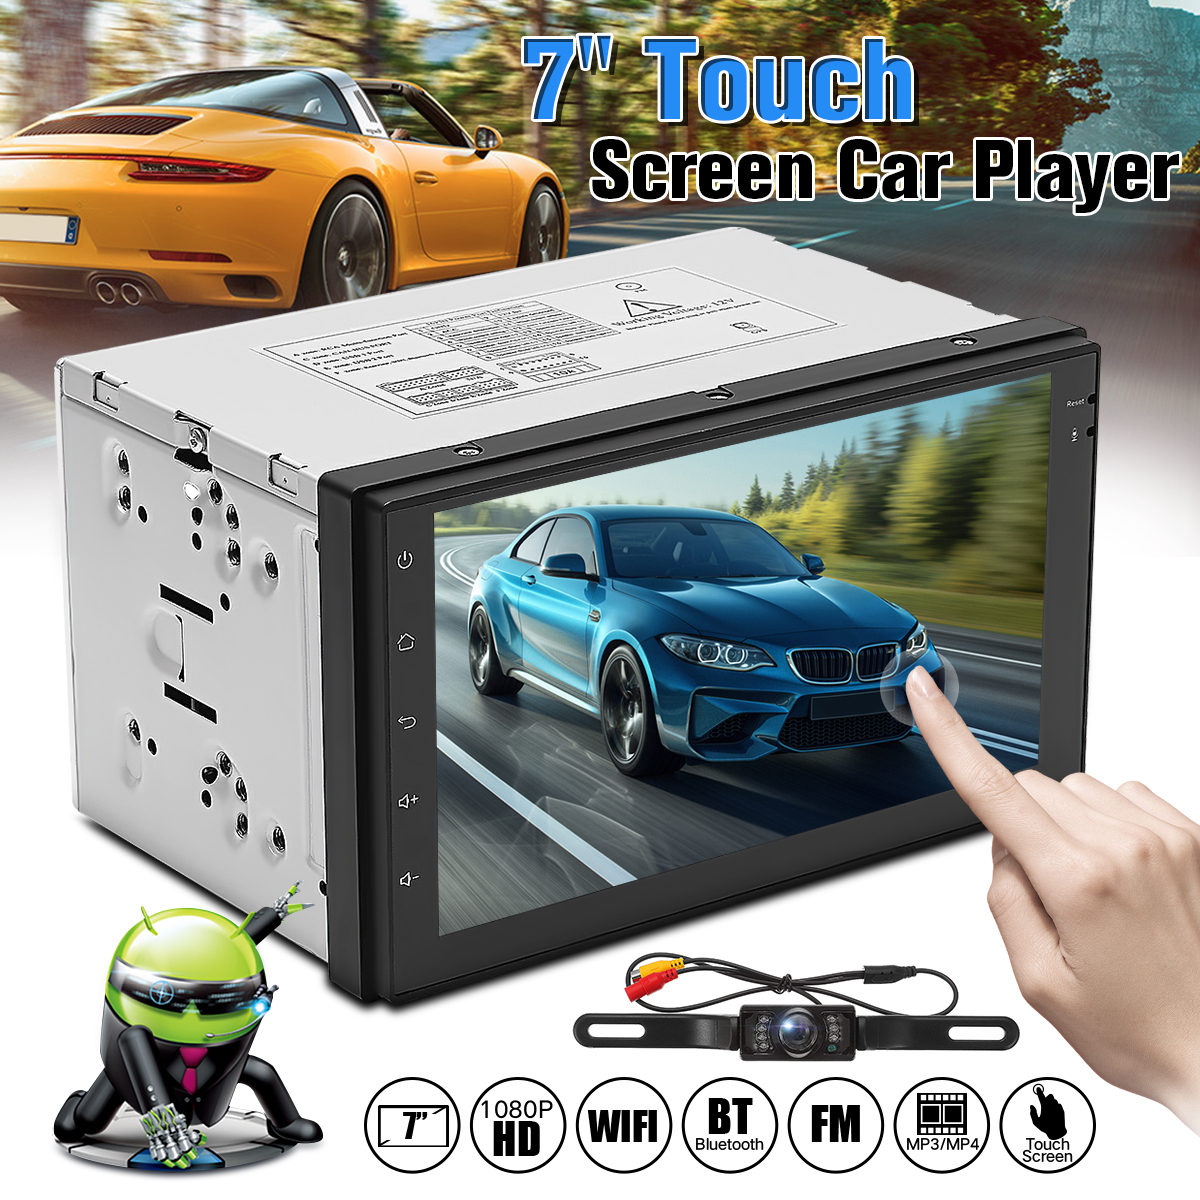 7 inch 2 Din Android 6.0 Car MP5 Player Auto Stereo DVD FM Radio Wifi GPS Navigation 4Core Blurtooth Autoradio +Rear View Camera 7 2 din touch screen car stereo mp5 player 4core android os bluetooth wifi gps navigator auto fm radio autoradio mirror link